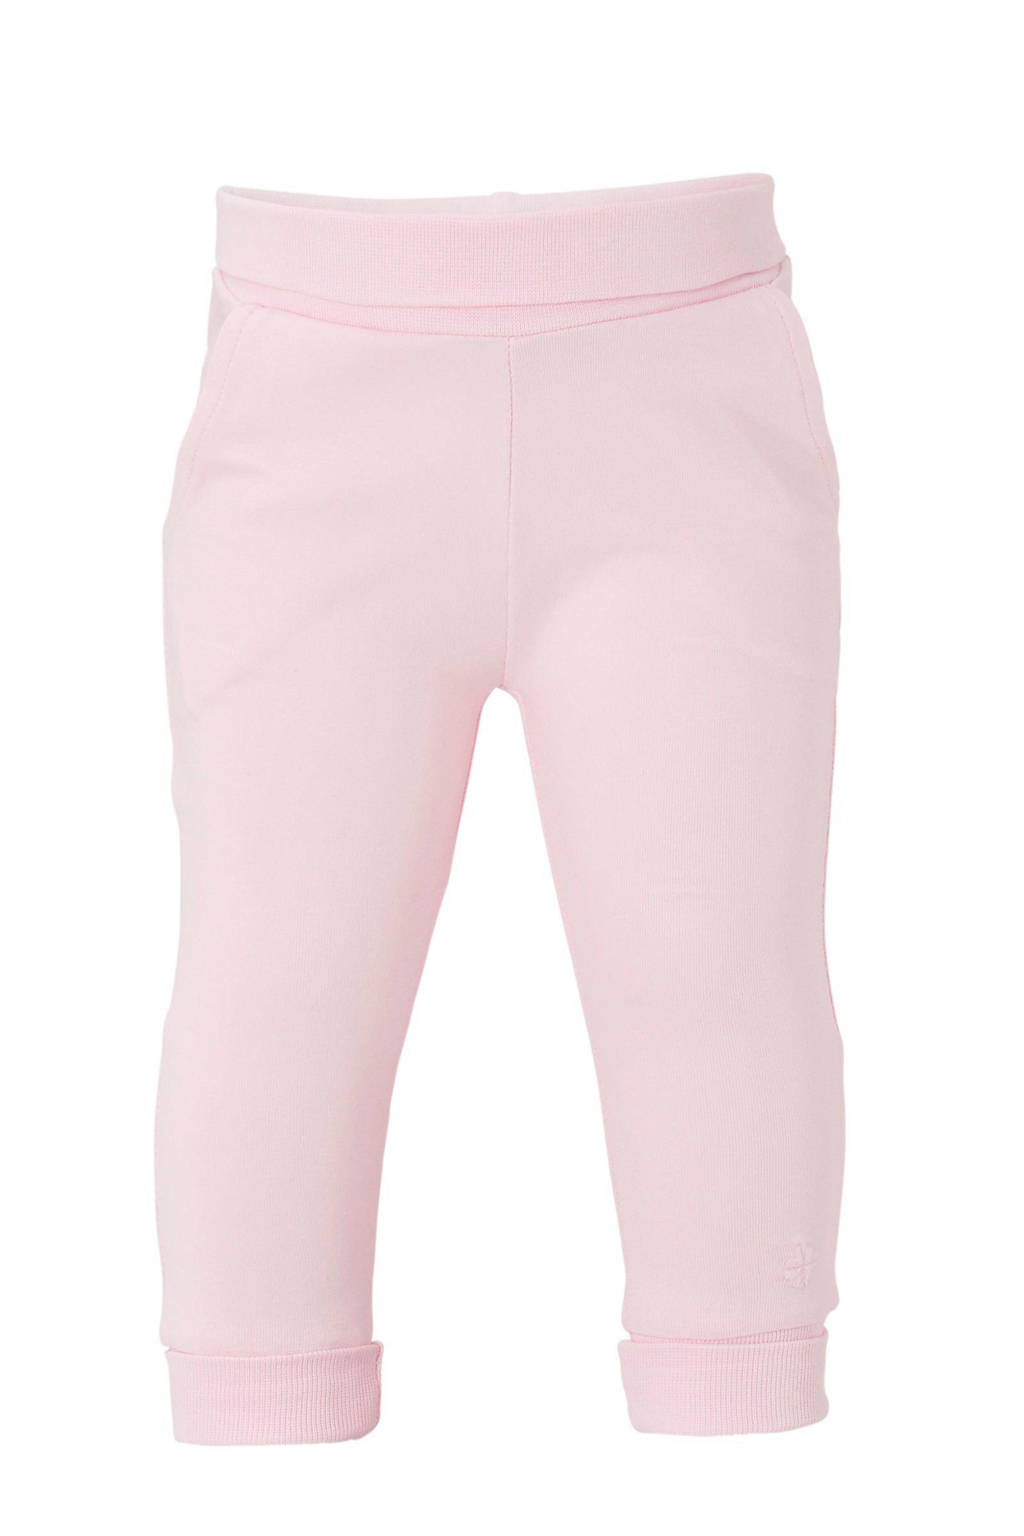 Noppies joggingbroek roze, Roze